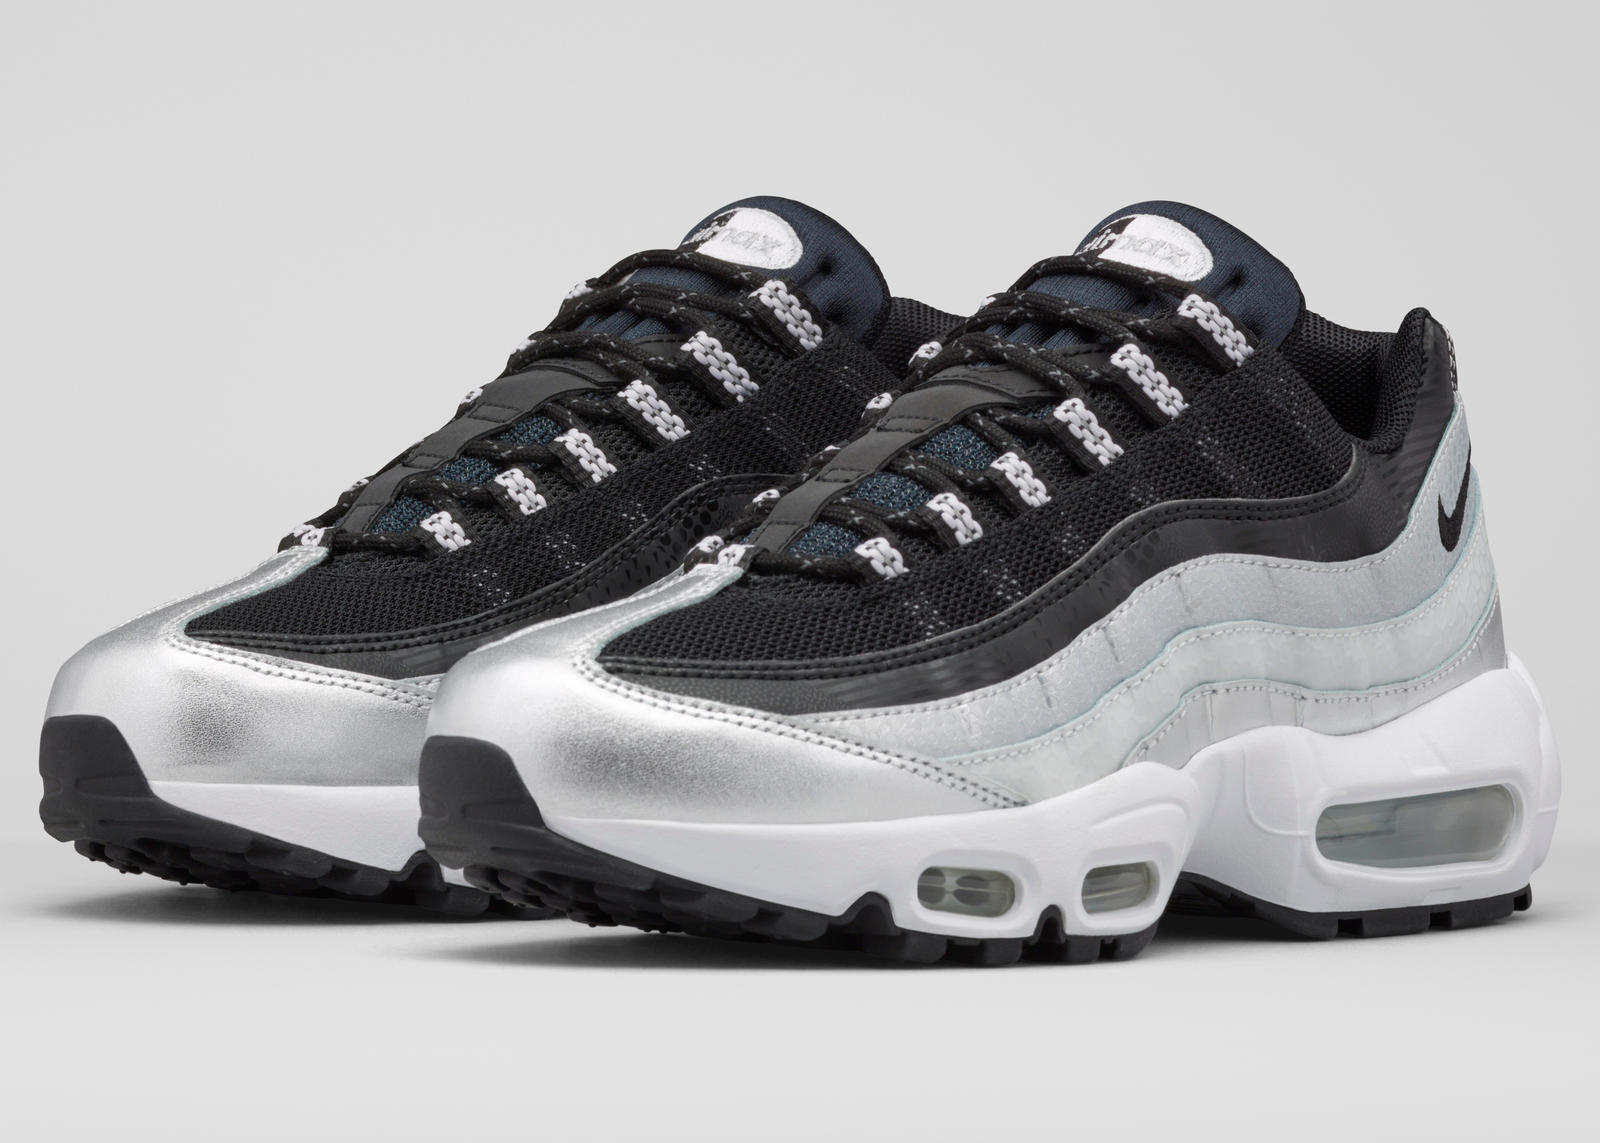 wholesale dealer 5beed 34a78 Already Platinum The Air Max 95s 20th Anniversary Style - Ni